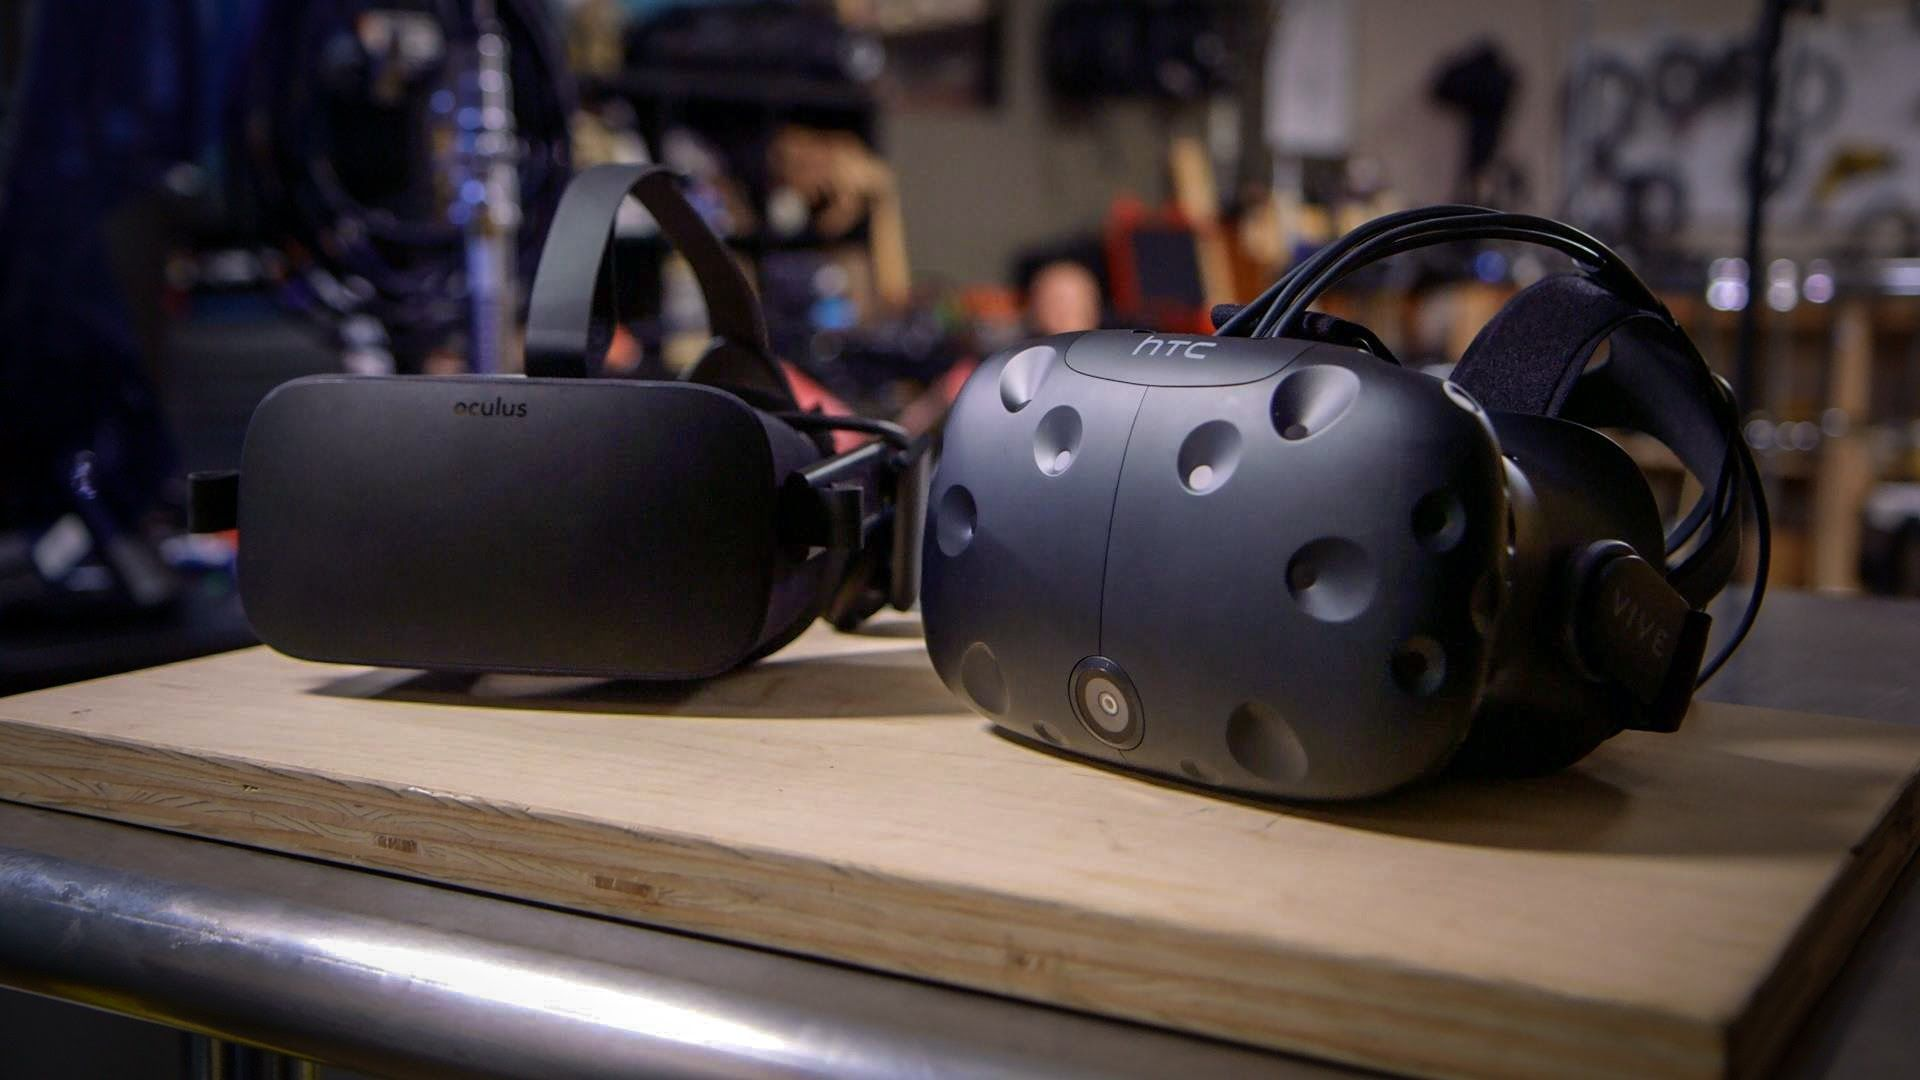 We Ve Now Reviewed Both The Oculus Rift And Htc Vive But After Spending More Time With Both Virtual Real Oculus Rift Vr Accessories Virtual Reality Technology